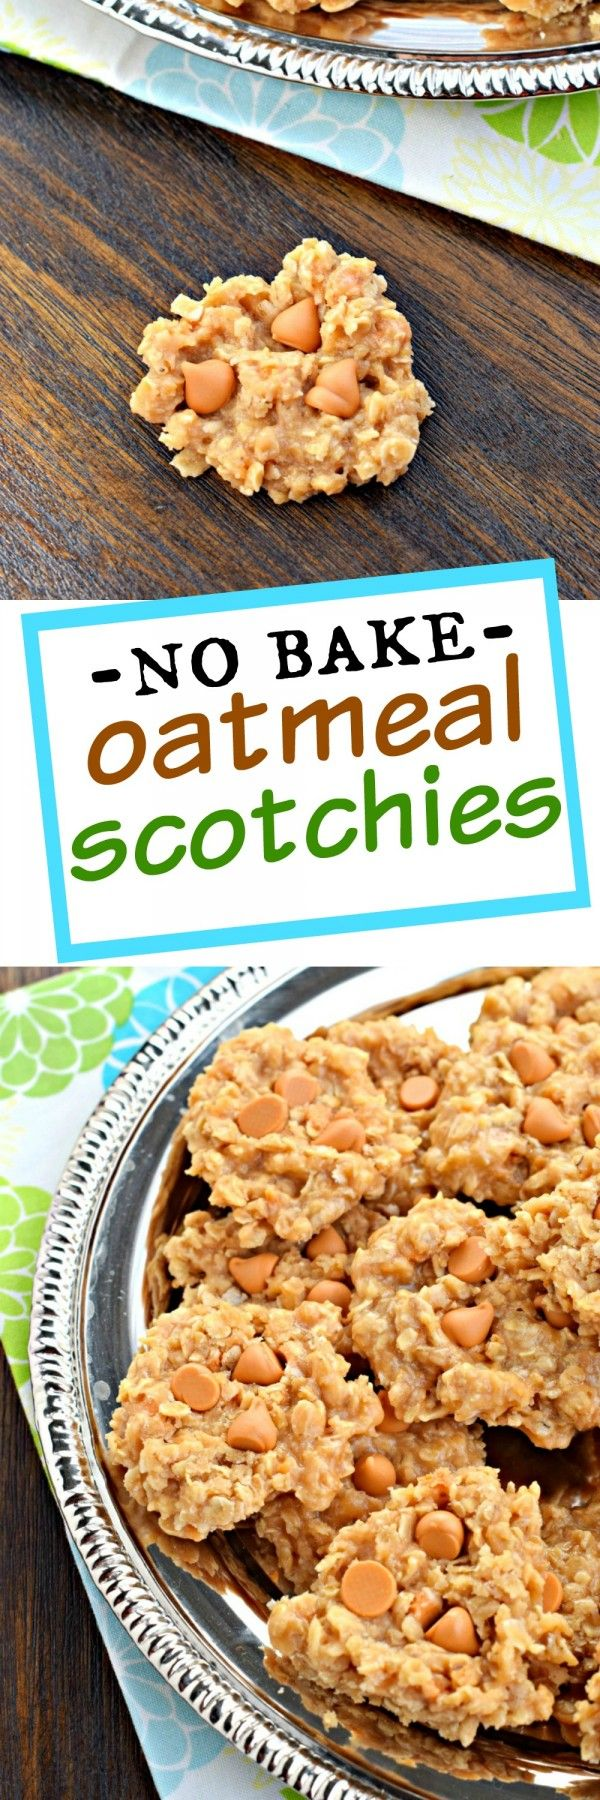 No Bake Oatmeal Scotchies cookie recipe: your favorite classic butterscotch oatmeal cookie in a delicious no bake dessert!